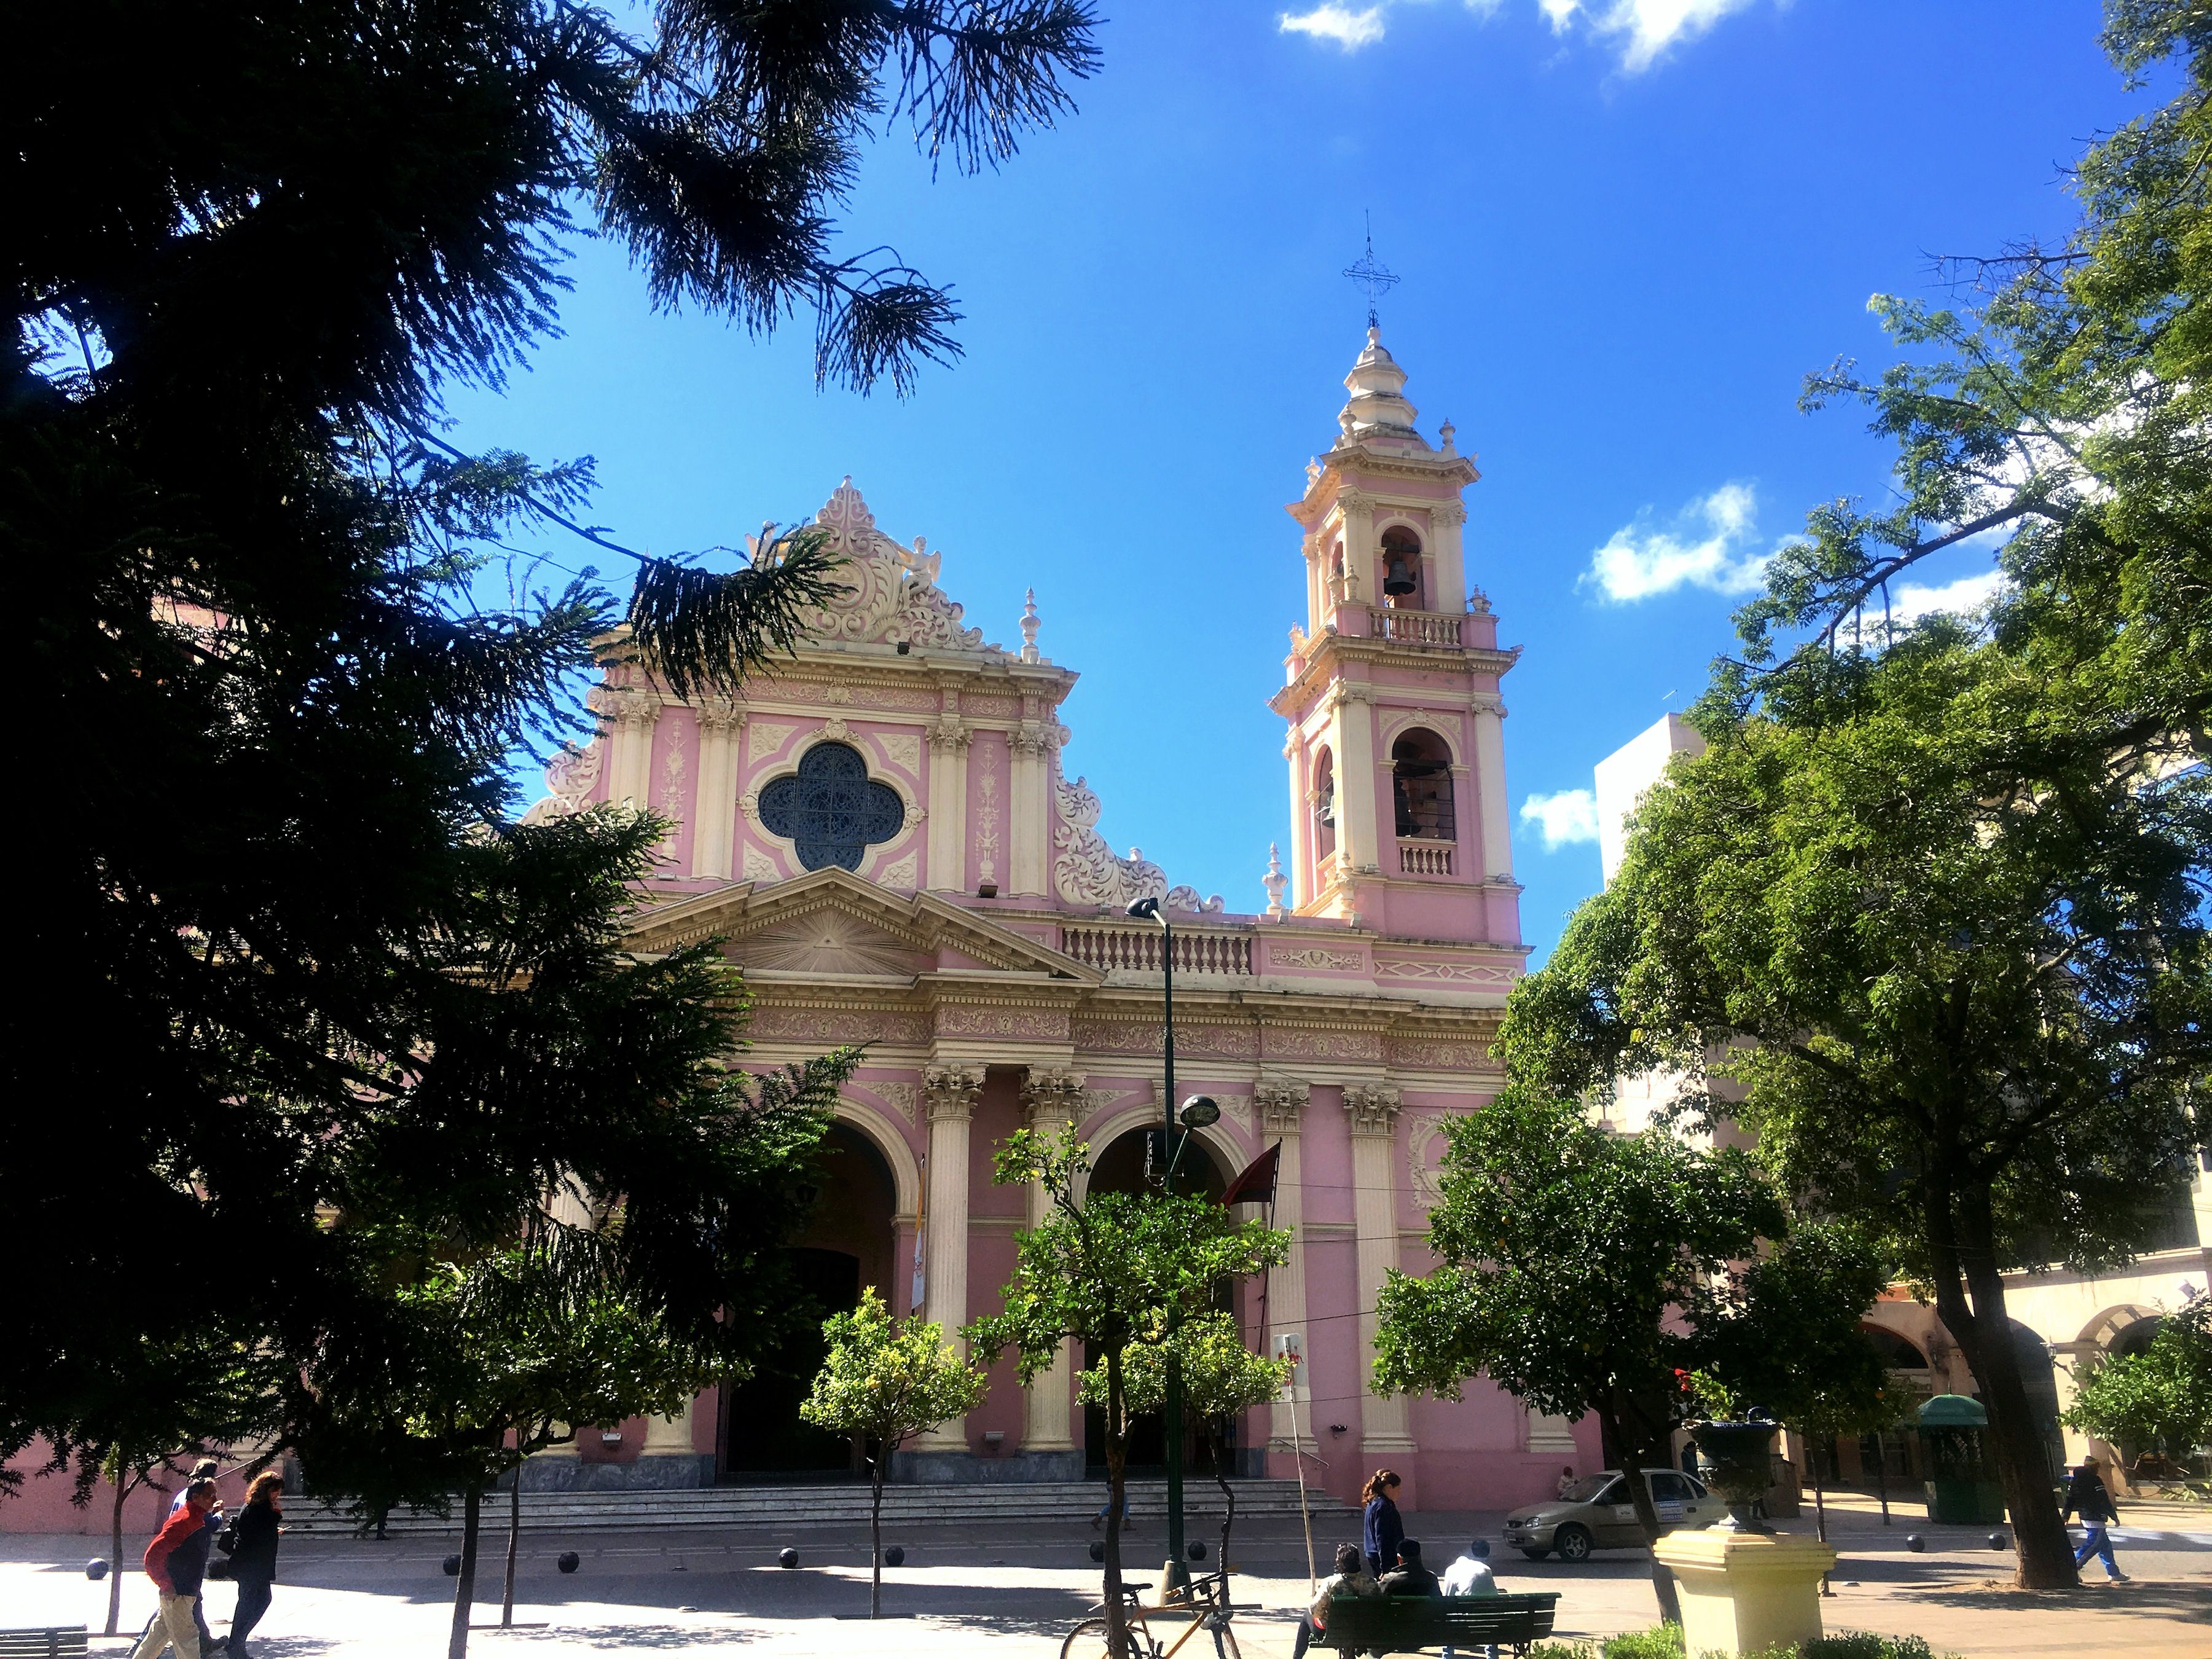 Salta's beautiful bubblegum-colored Cathedral, seen through the trees of the central plaza